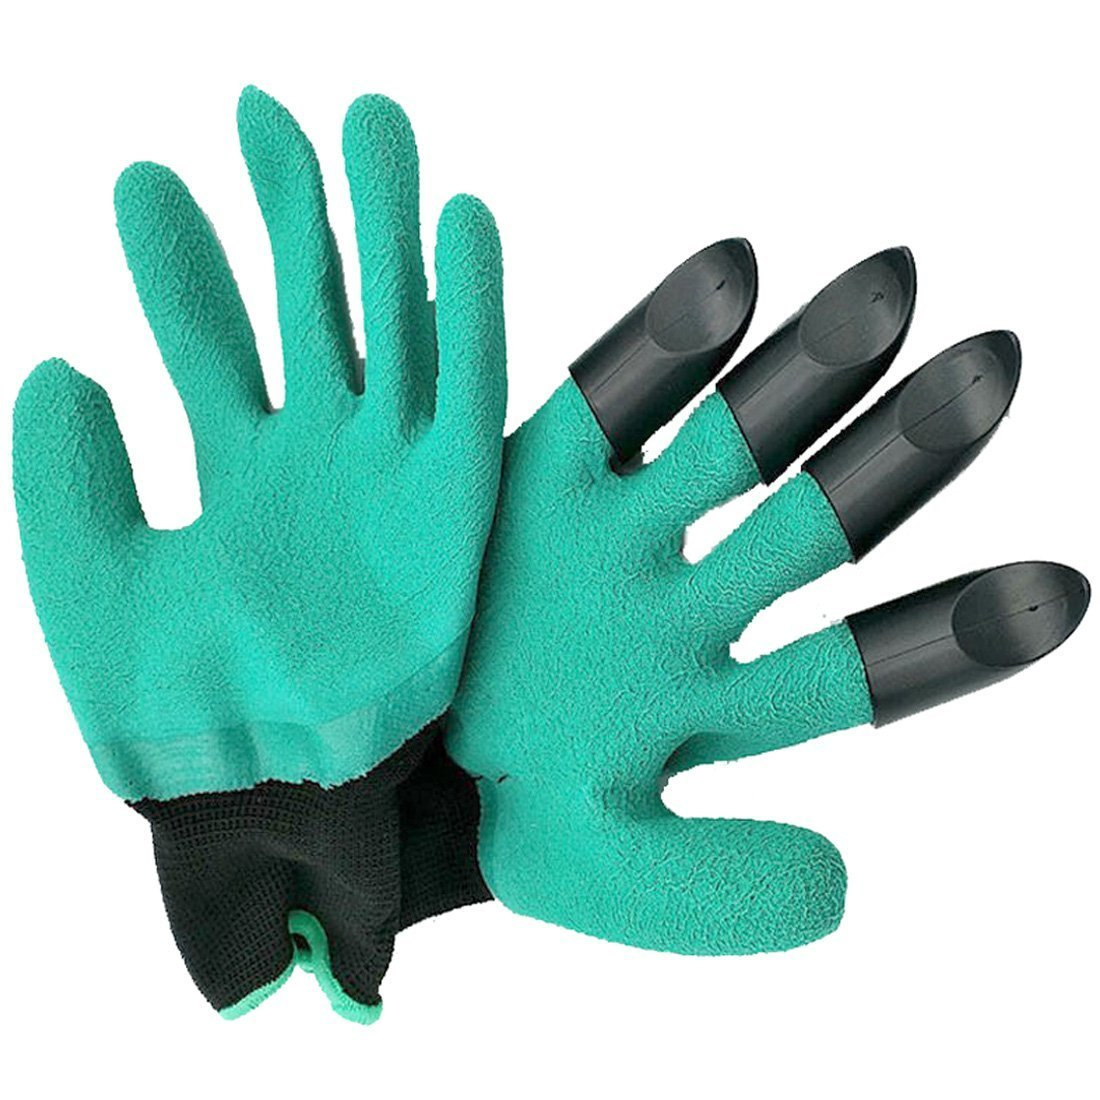 Meanch Unisex Waterproof Garden Genie Gloves with Fingertips Sturdy Right Claws Quick